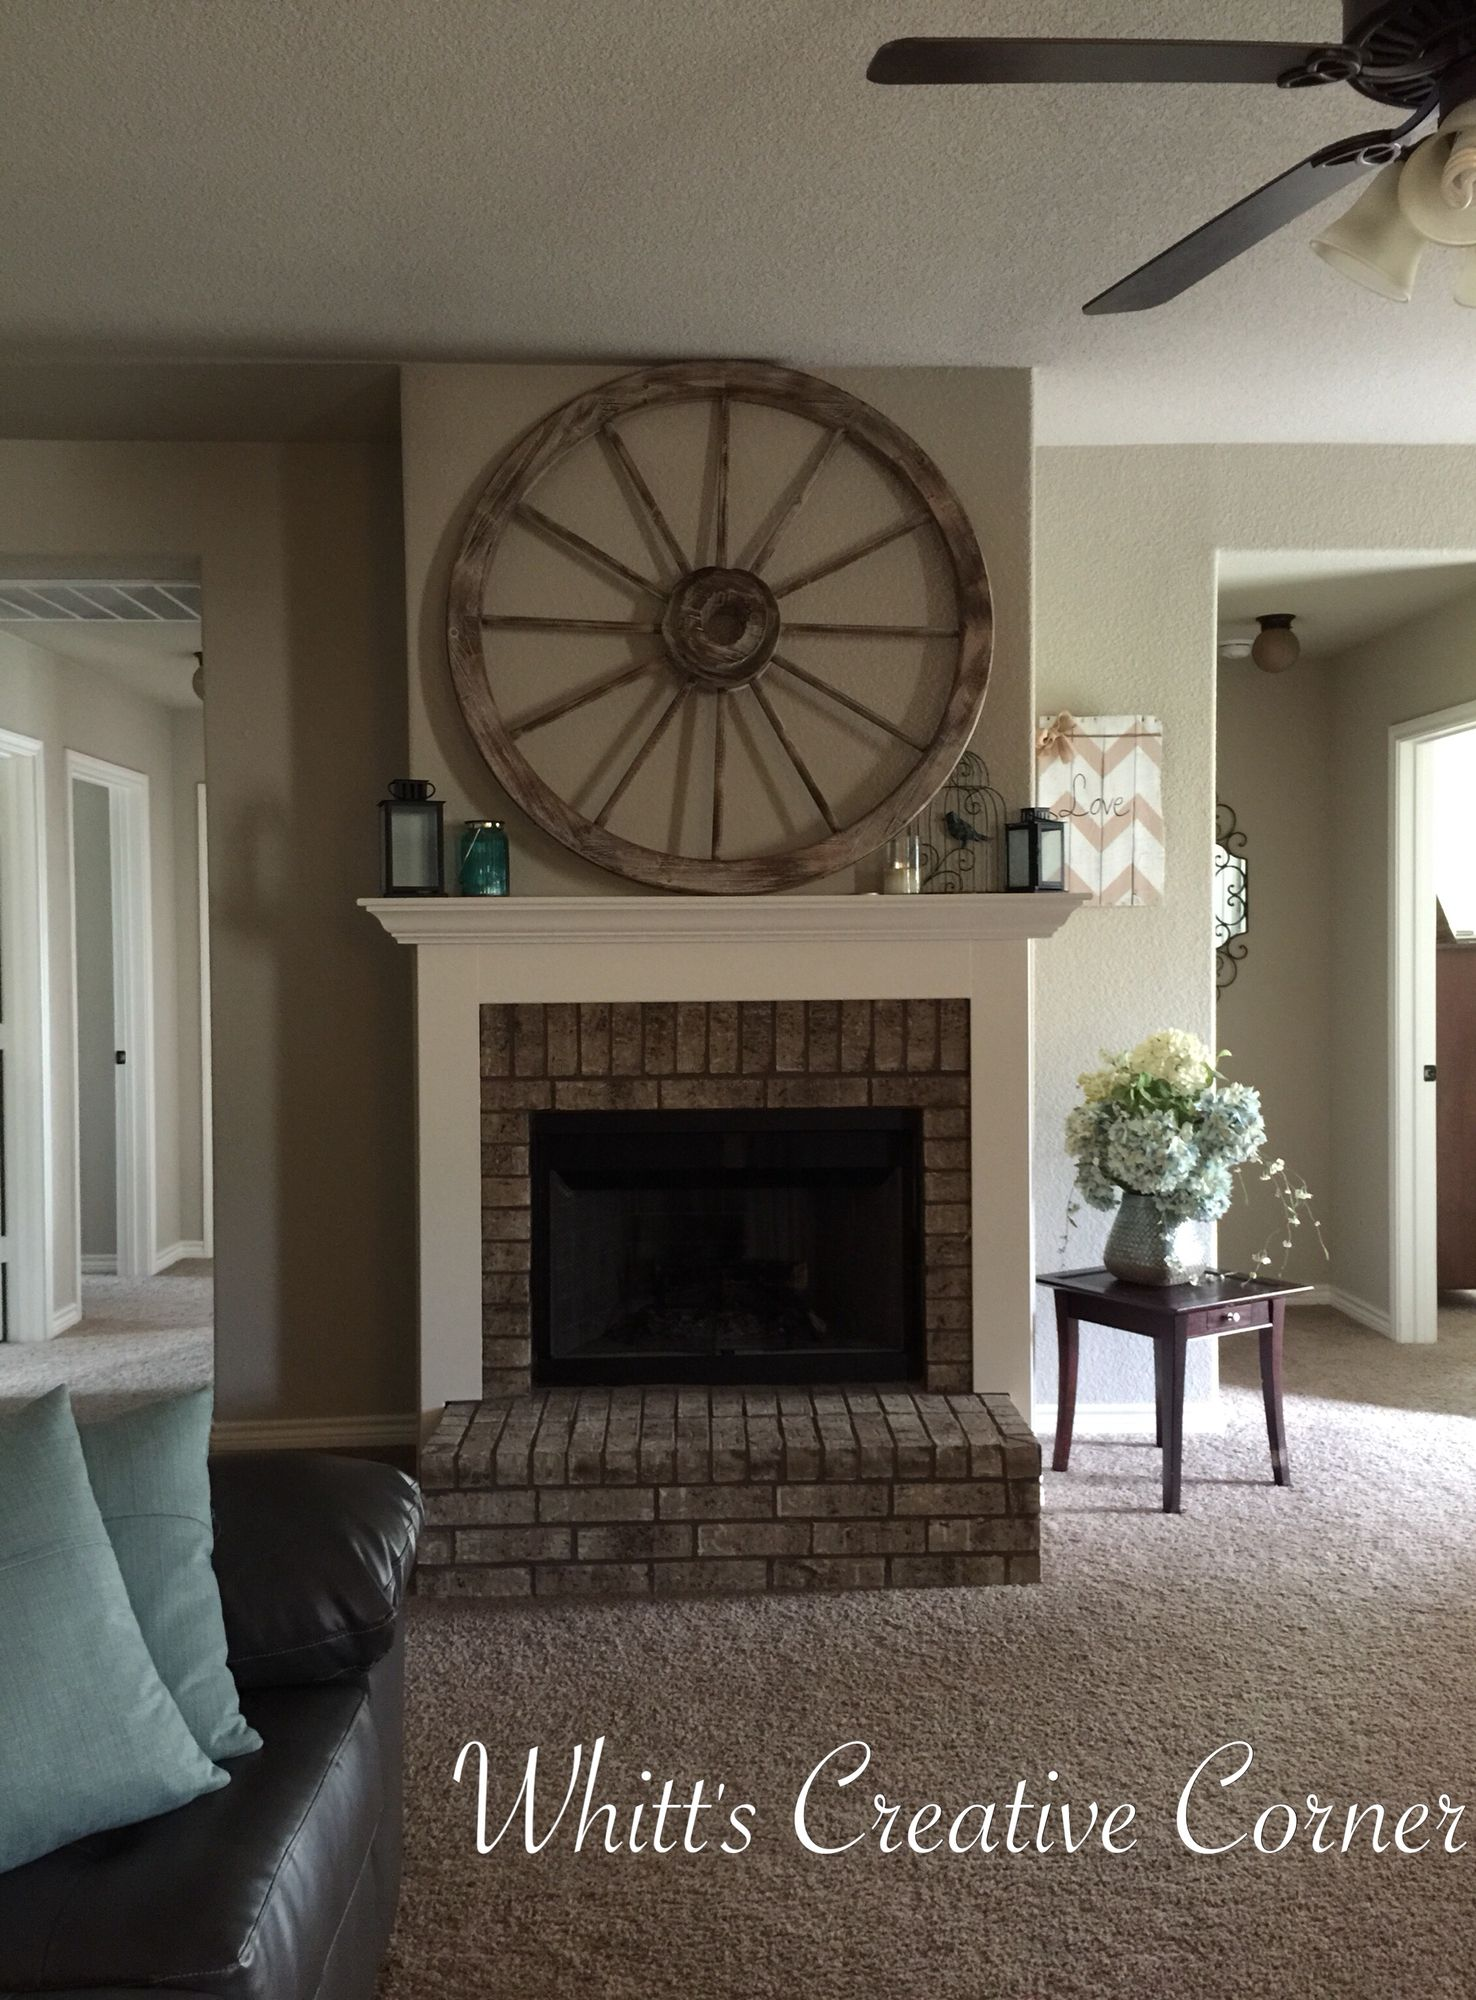 Wagon Wheel Decor I Love This Look Above Our Fireplace Nice Country Chic Feel Http Www Facebook Whittscreativecorner